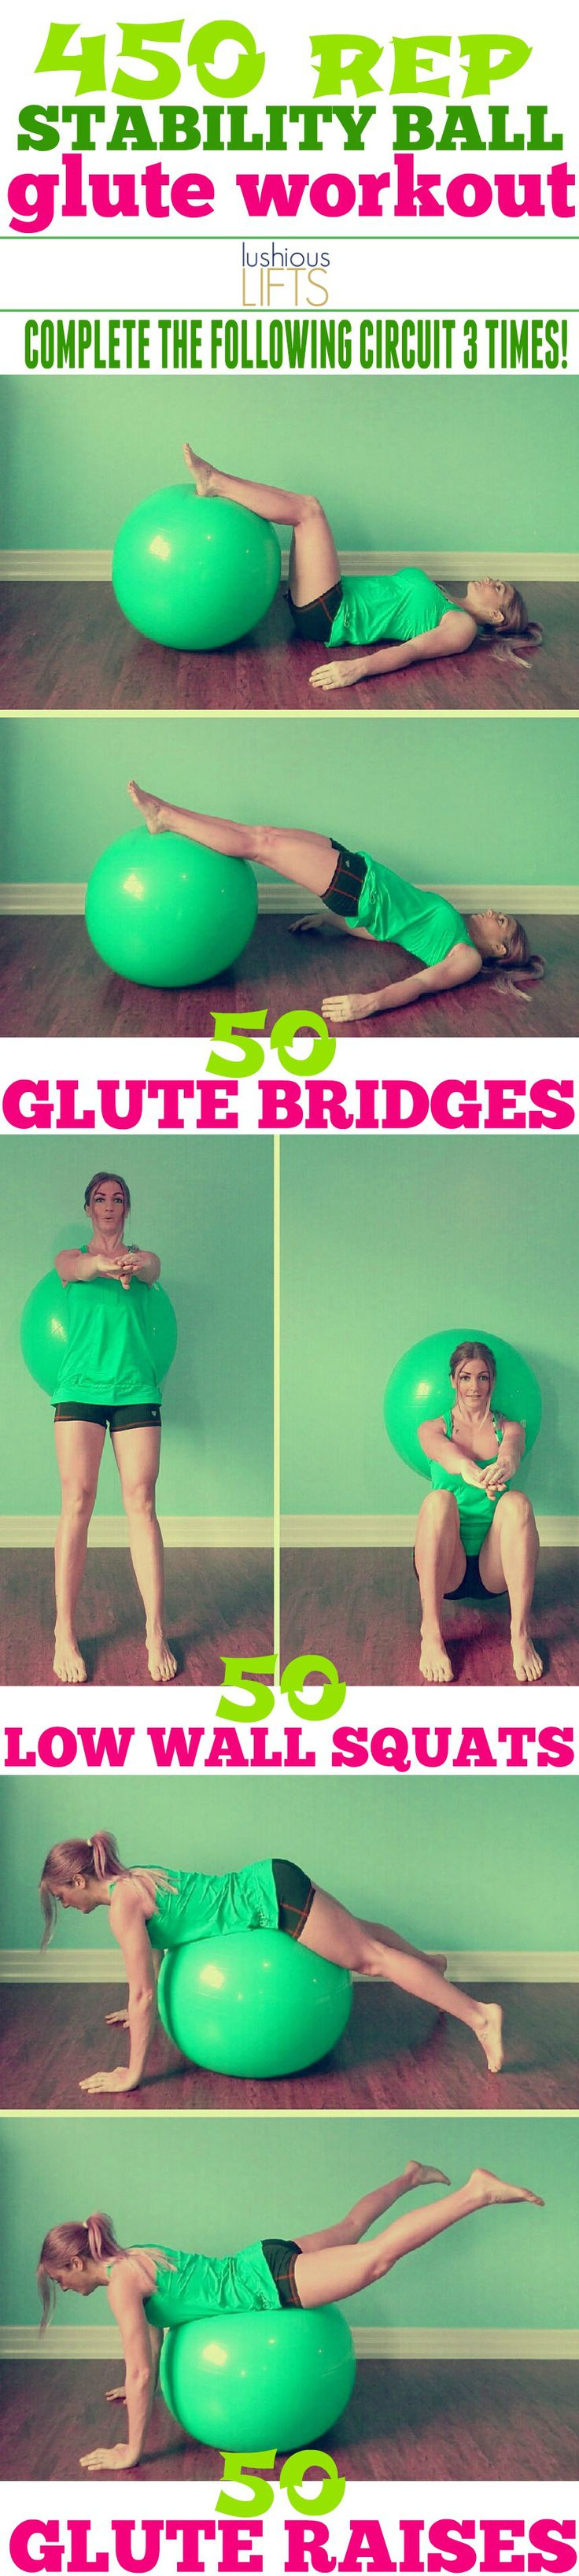 the best butt workout that only requires a stability ball! #toneitup #buttworkout